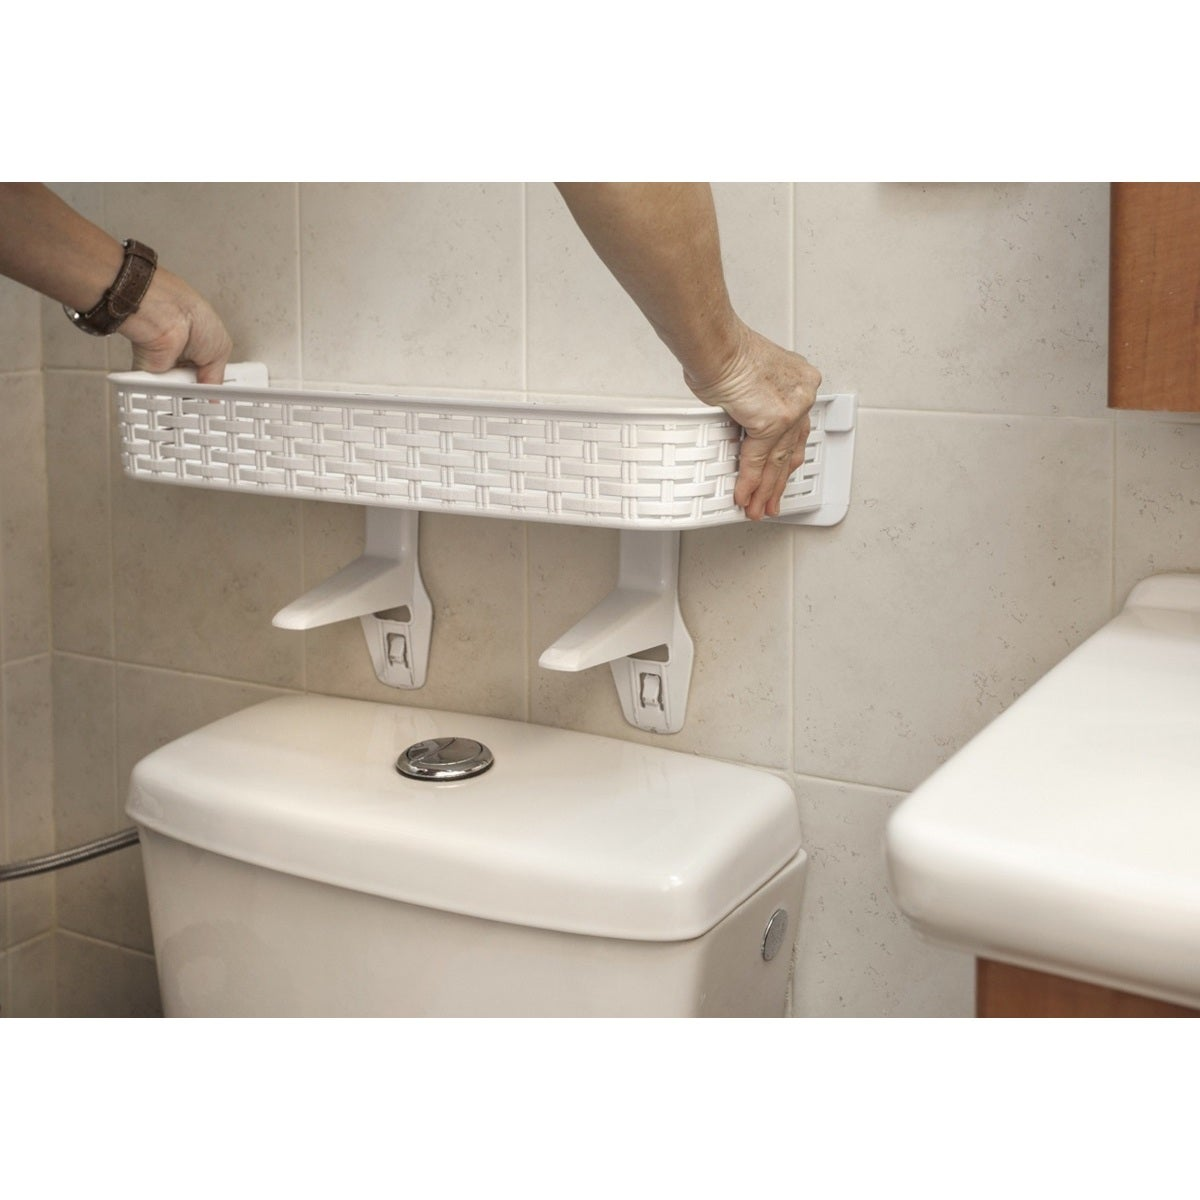 White Rattan Plastic Above Toilet Bathroom Space Saver Shelf   Free  Shipping On Orders Over $45   Overstock.com   19399508